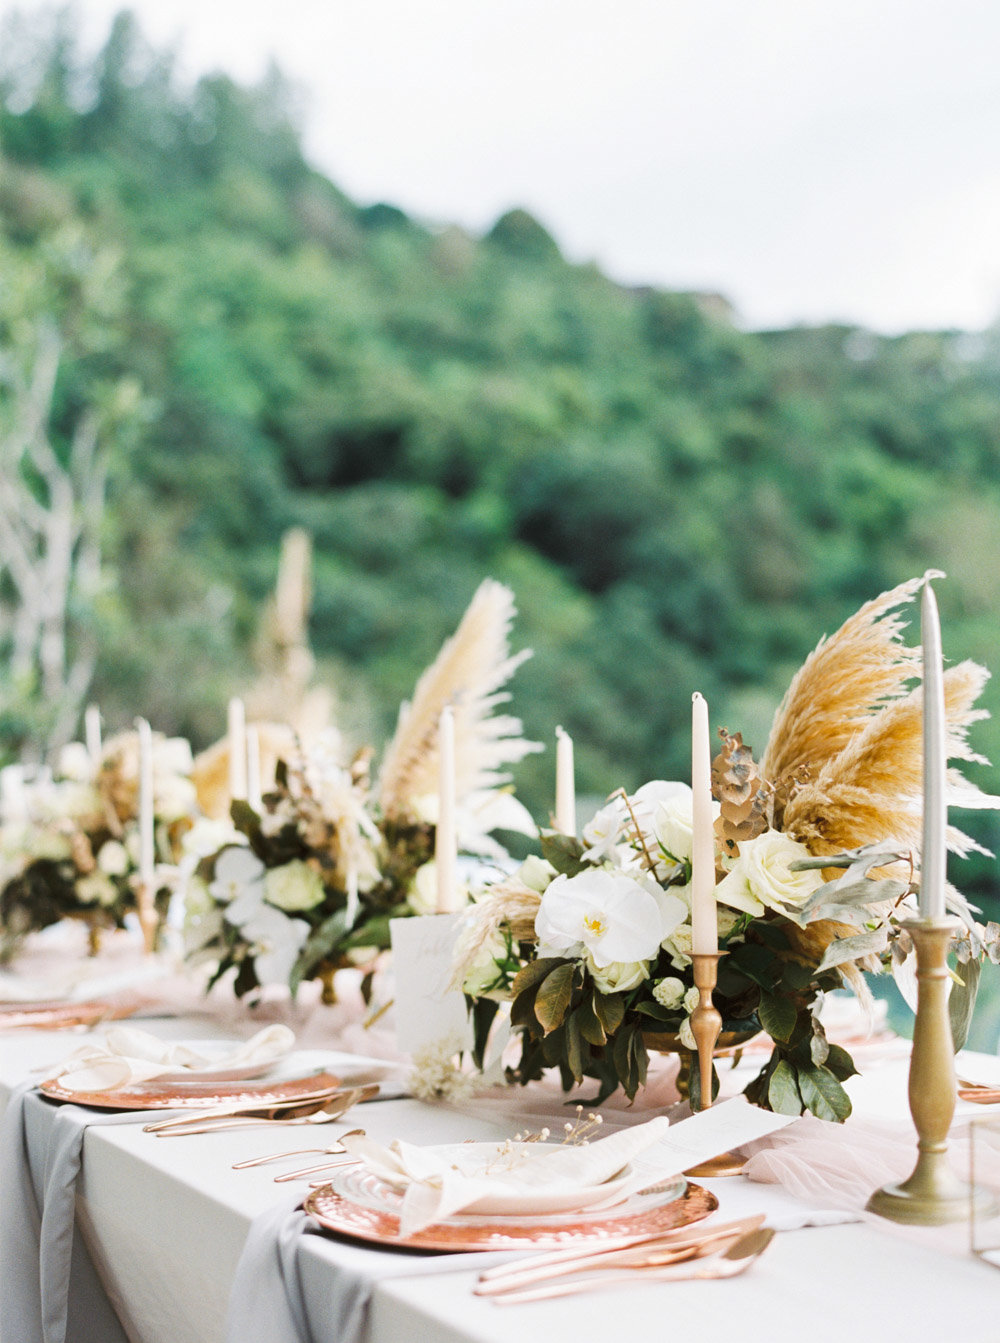 Phuket Wedding Photographer - Thailand Elopement by Destination Fine Art Film Wedding Photographer Sheri McMahon-00037